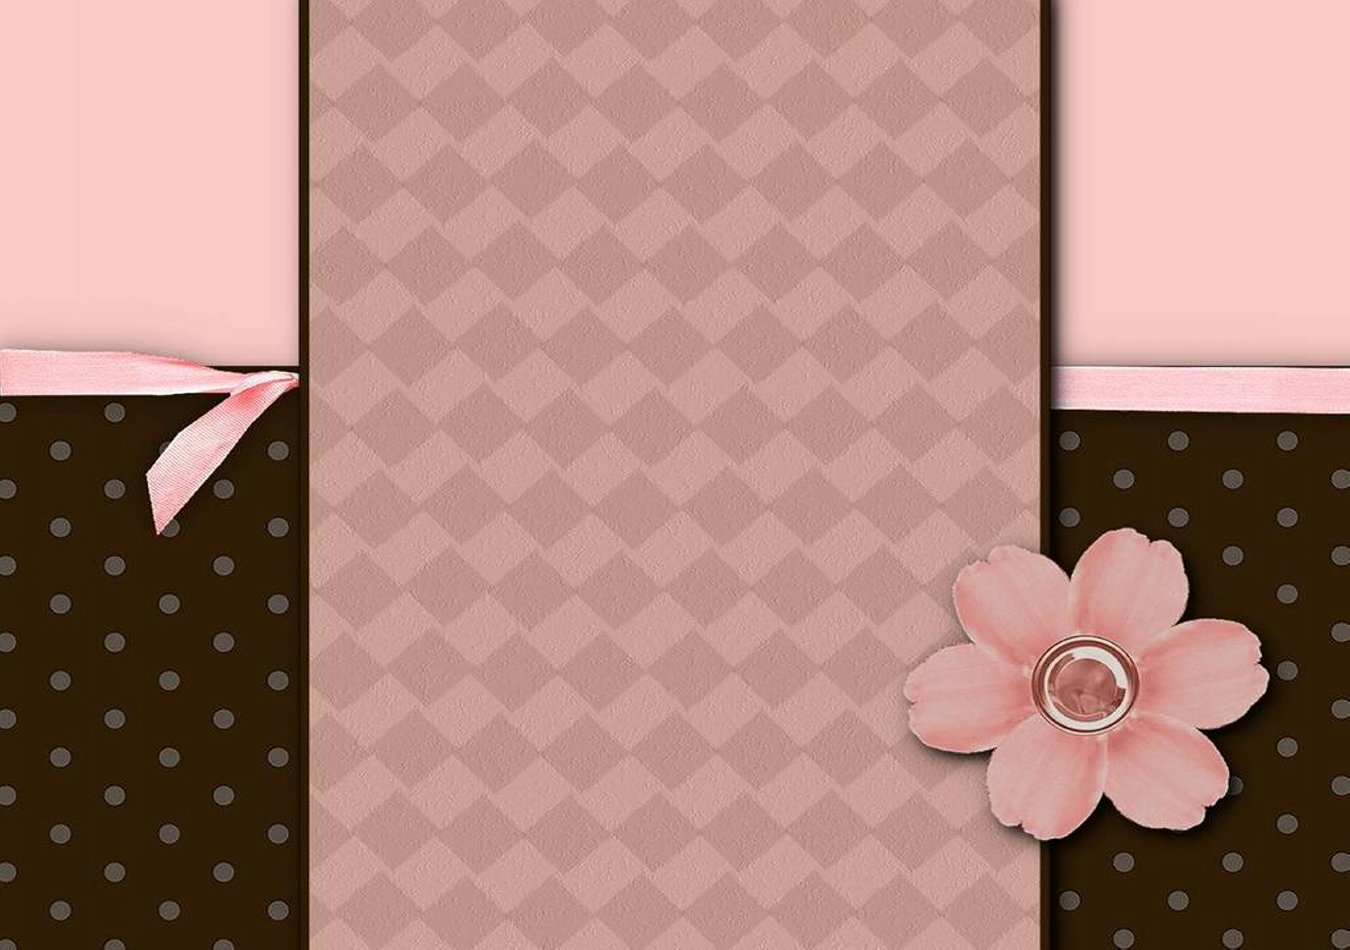 Pink and Brown Wallpaper - WallpaperSafari